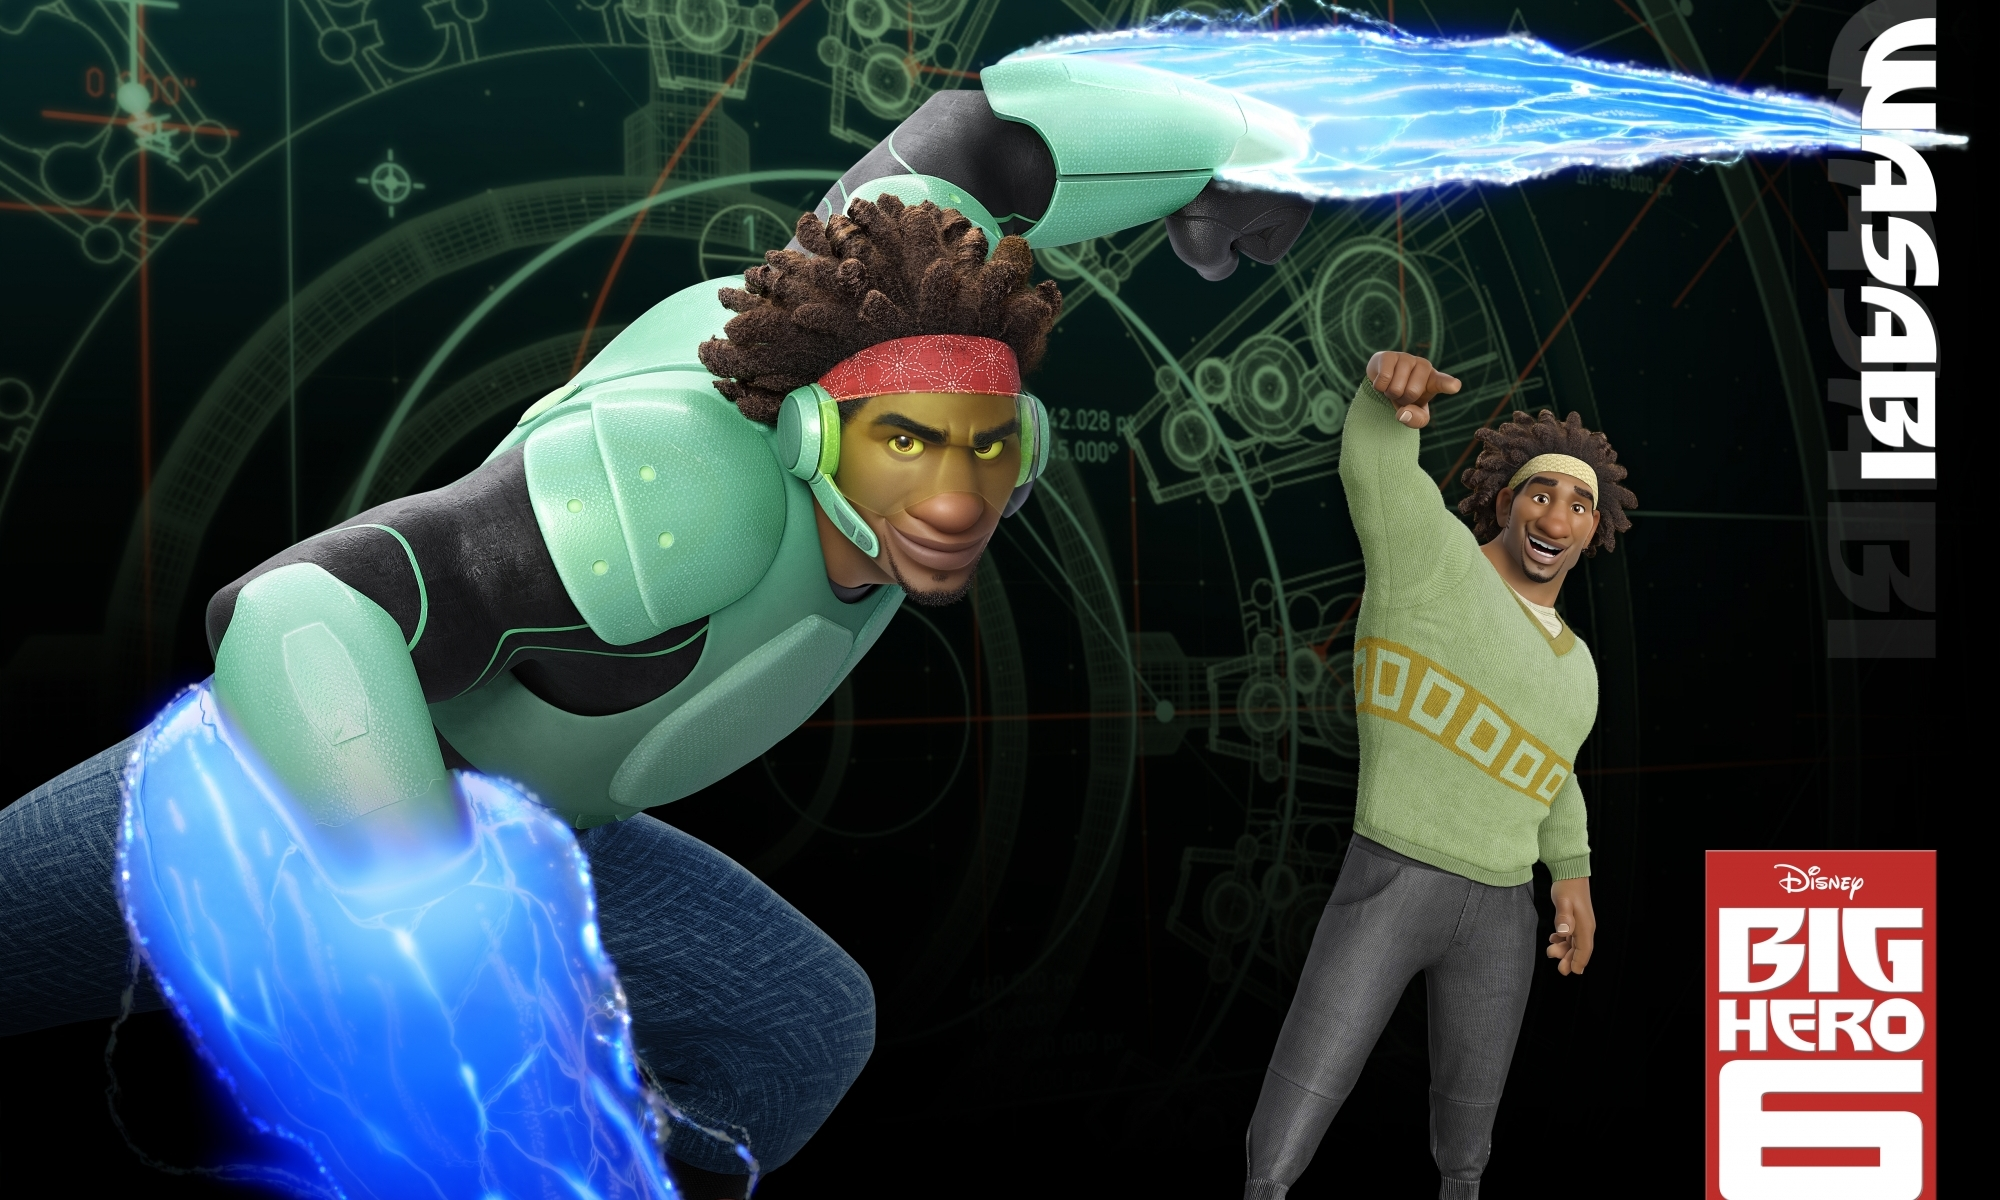 Big Hero 6 Aka Why They Do The Brotha Like That The Nerds Of Color